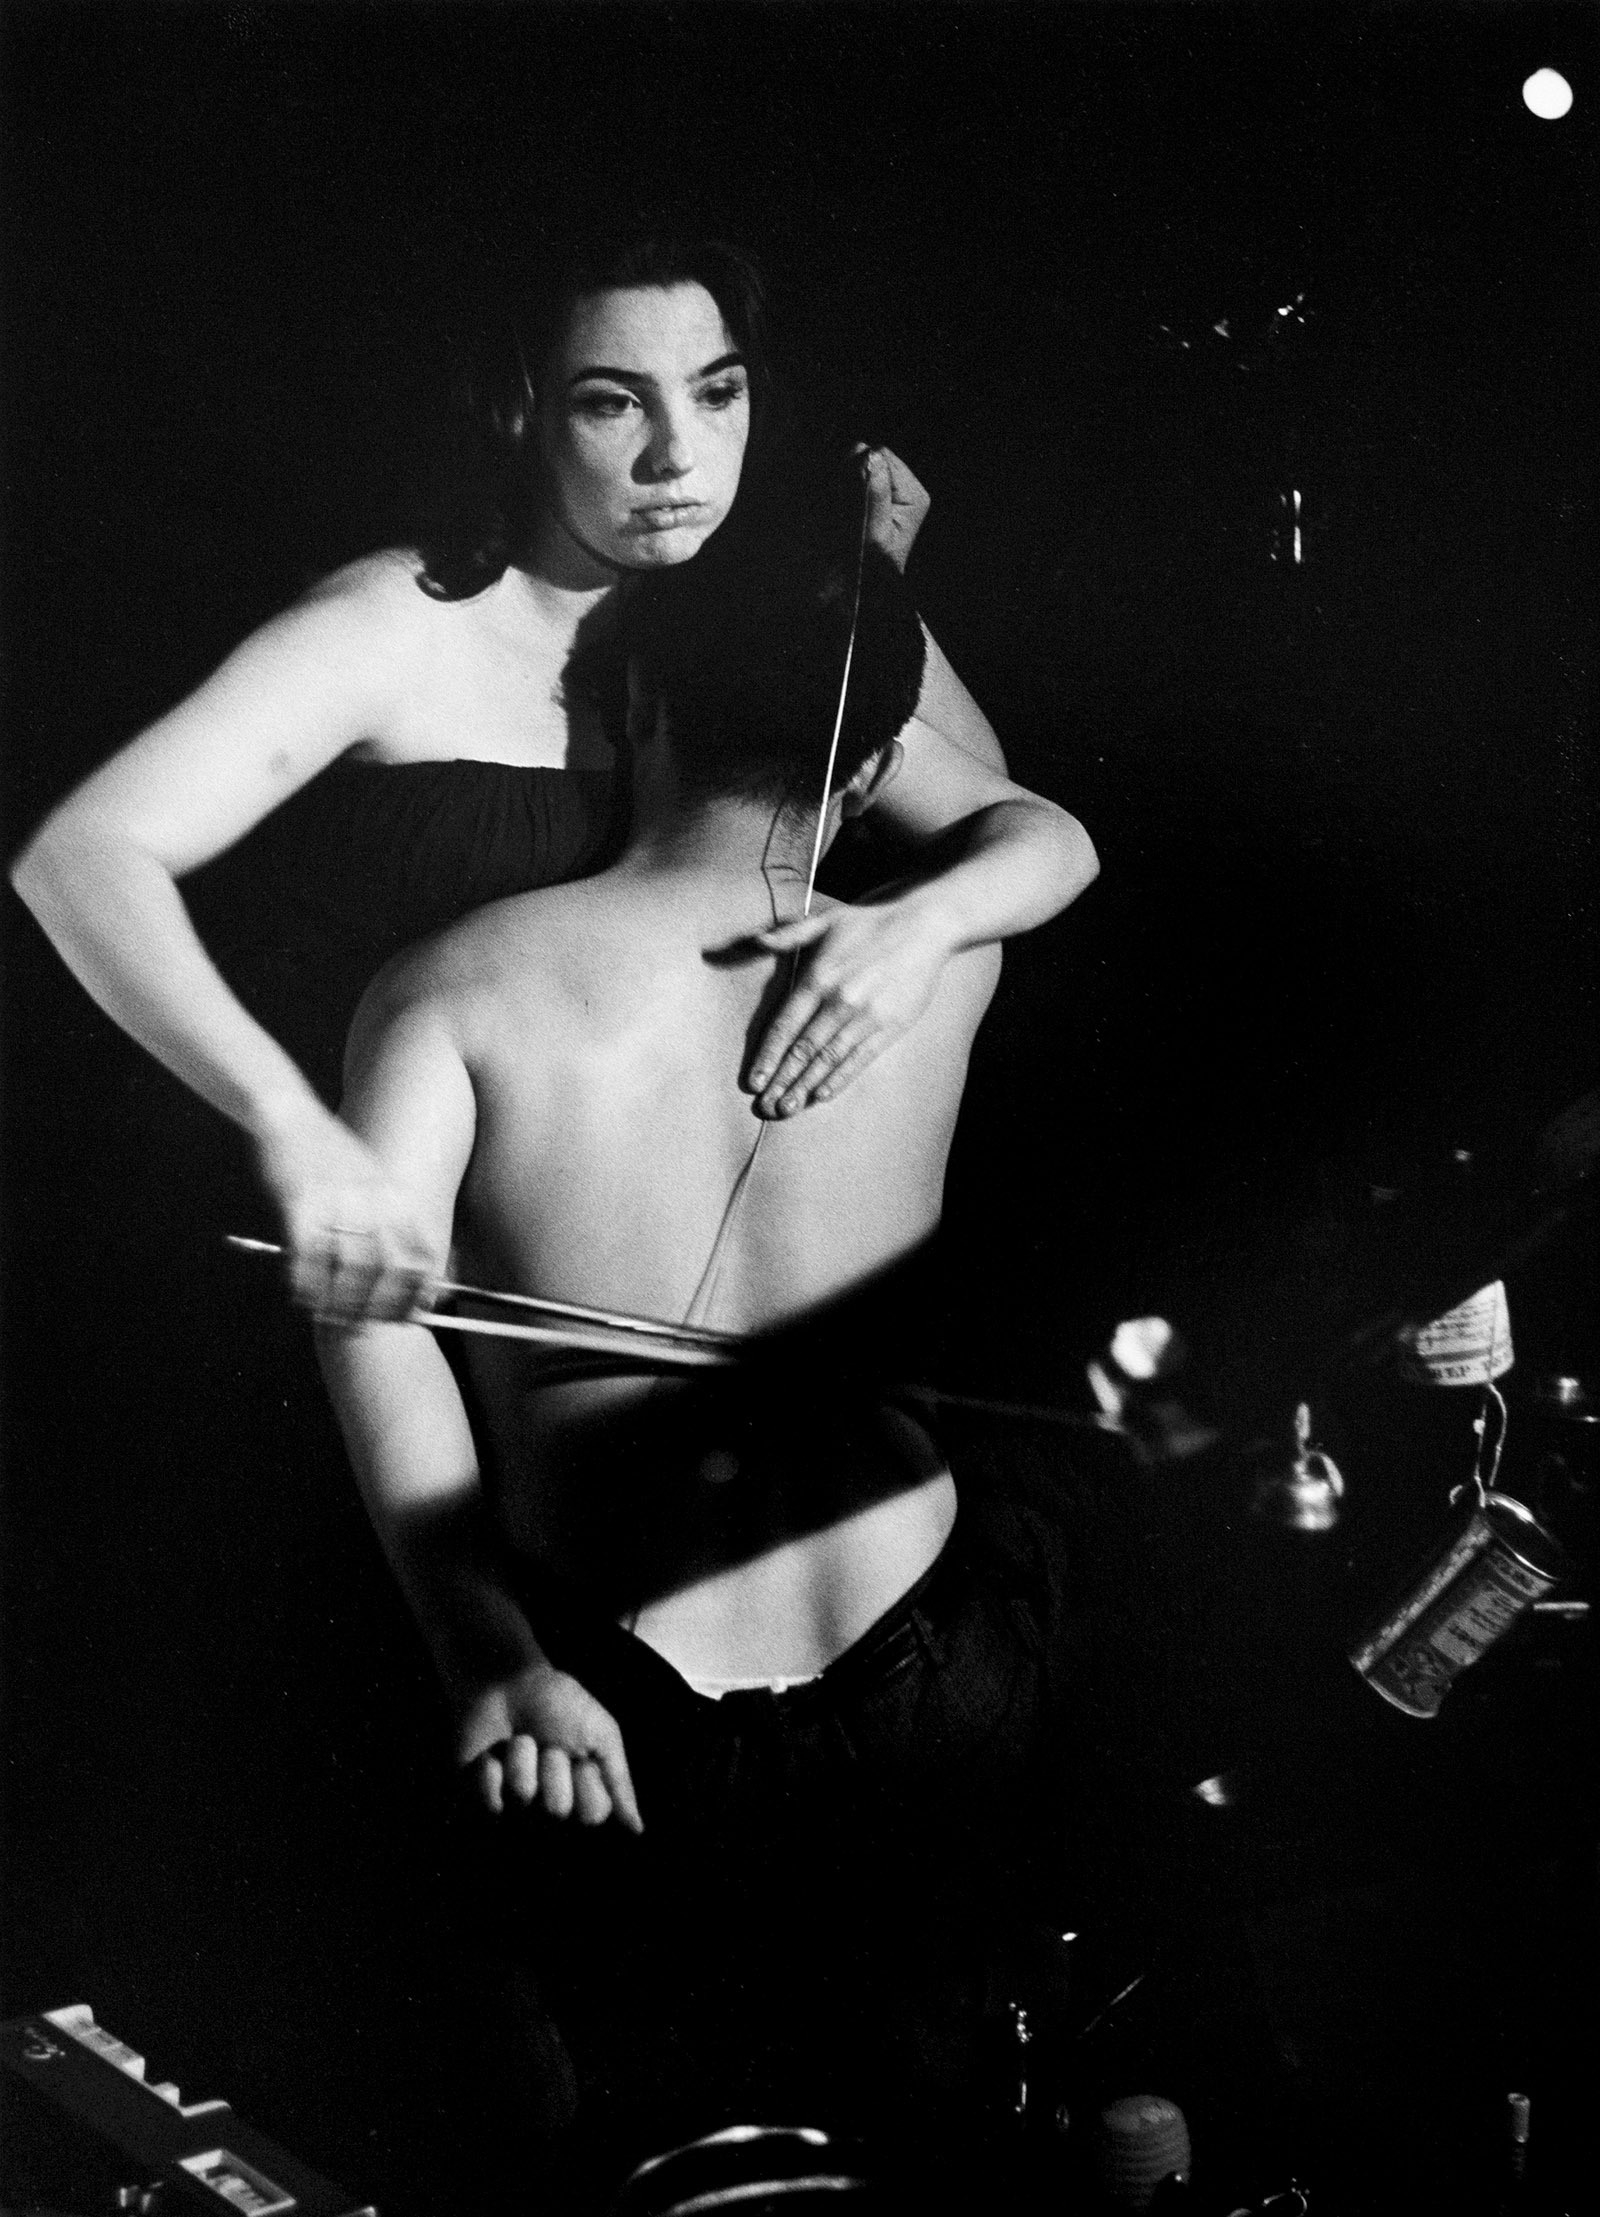 Charlotte Moorman and Nam June Paik performing John Cage's 26'1.1499'' for a String Player, 1965; photograph by Peter Moore